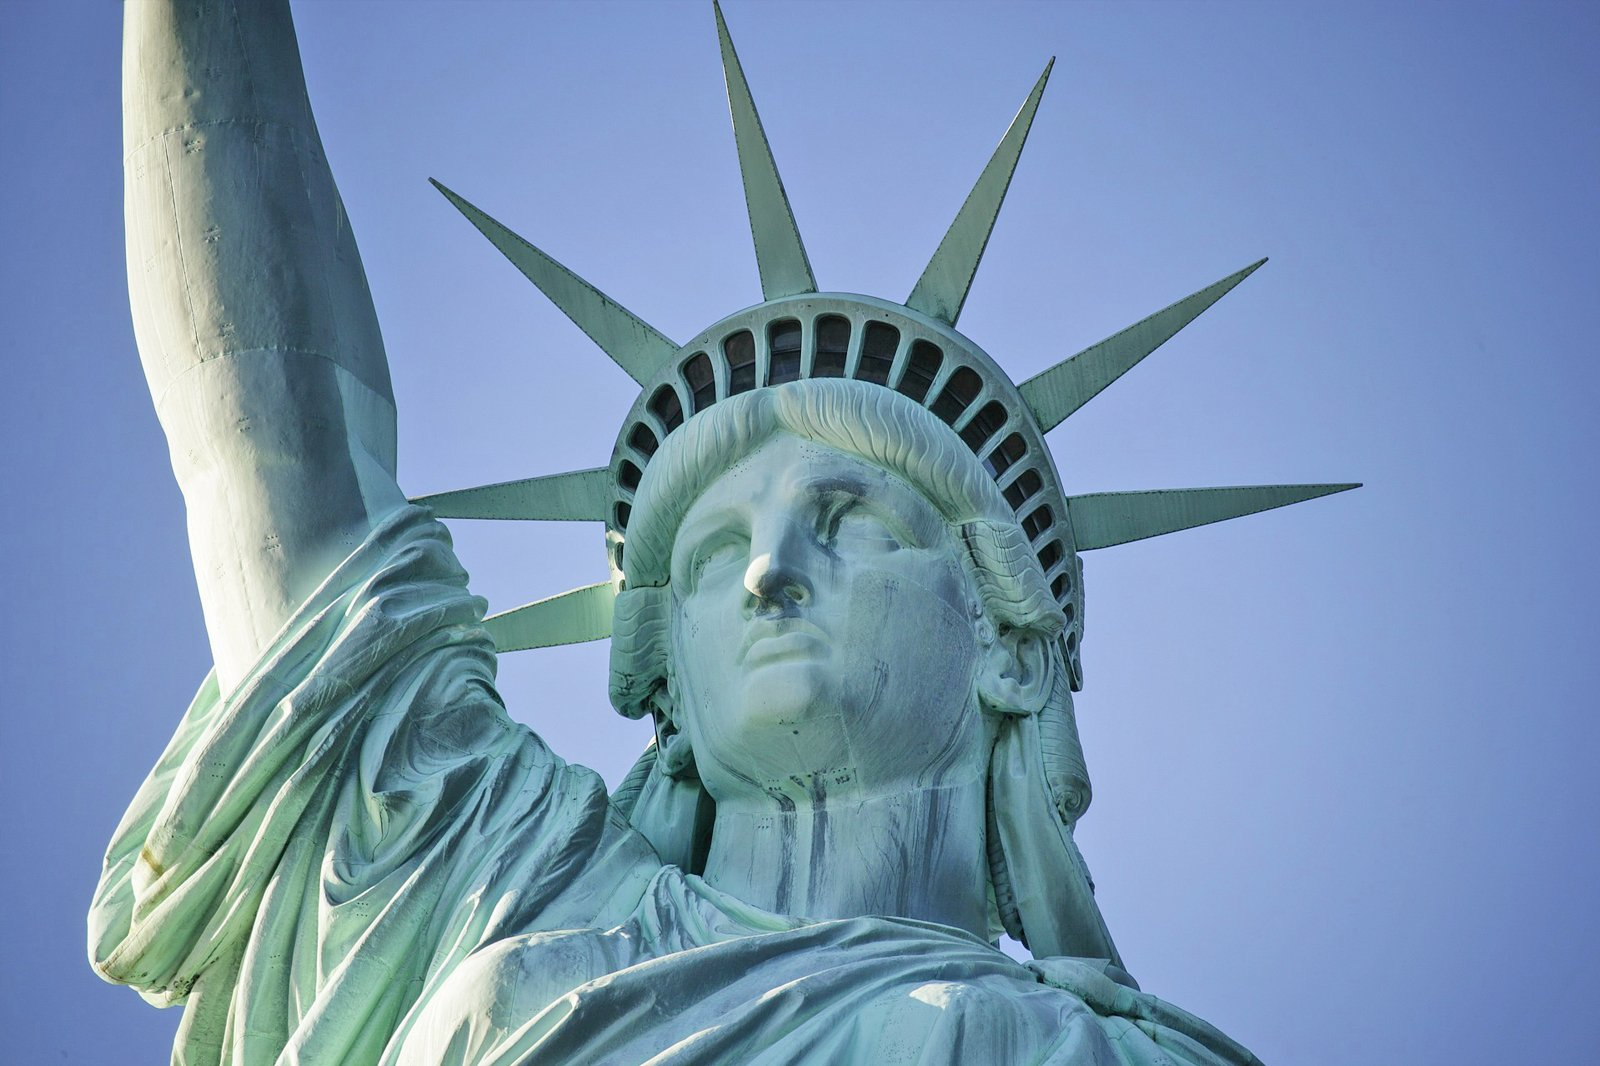 10 Fun Facts About The Statue Of Liberty An Iconic New York Landmark Uncovered Go Guides